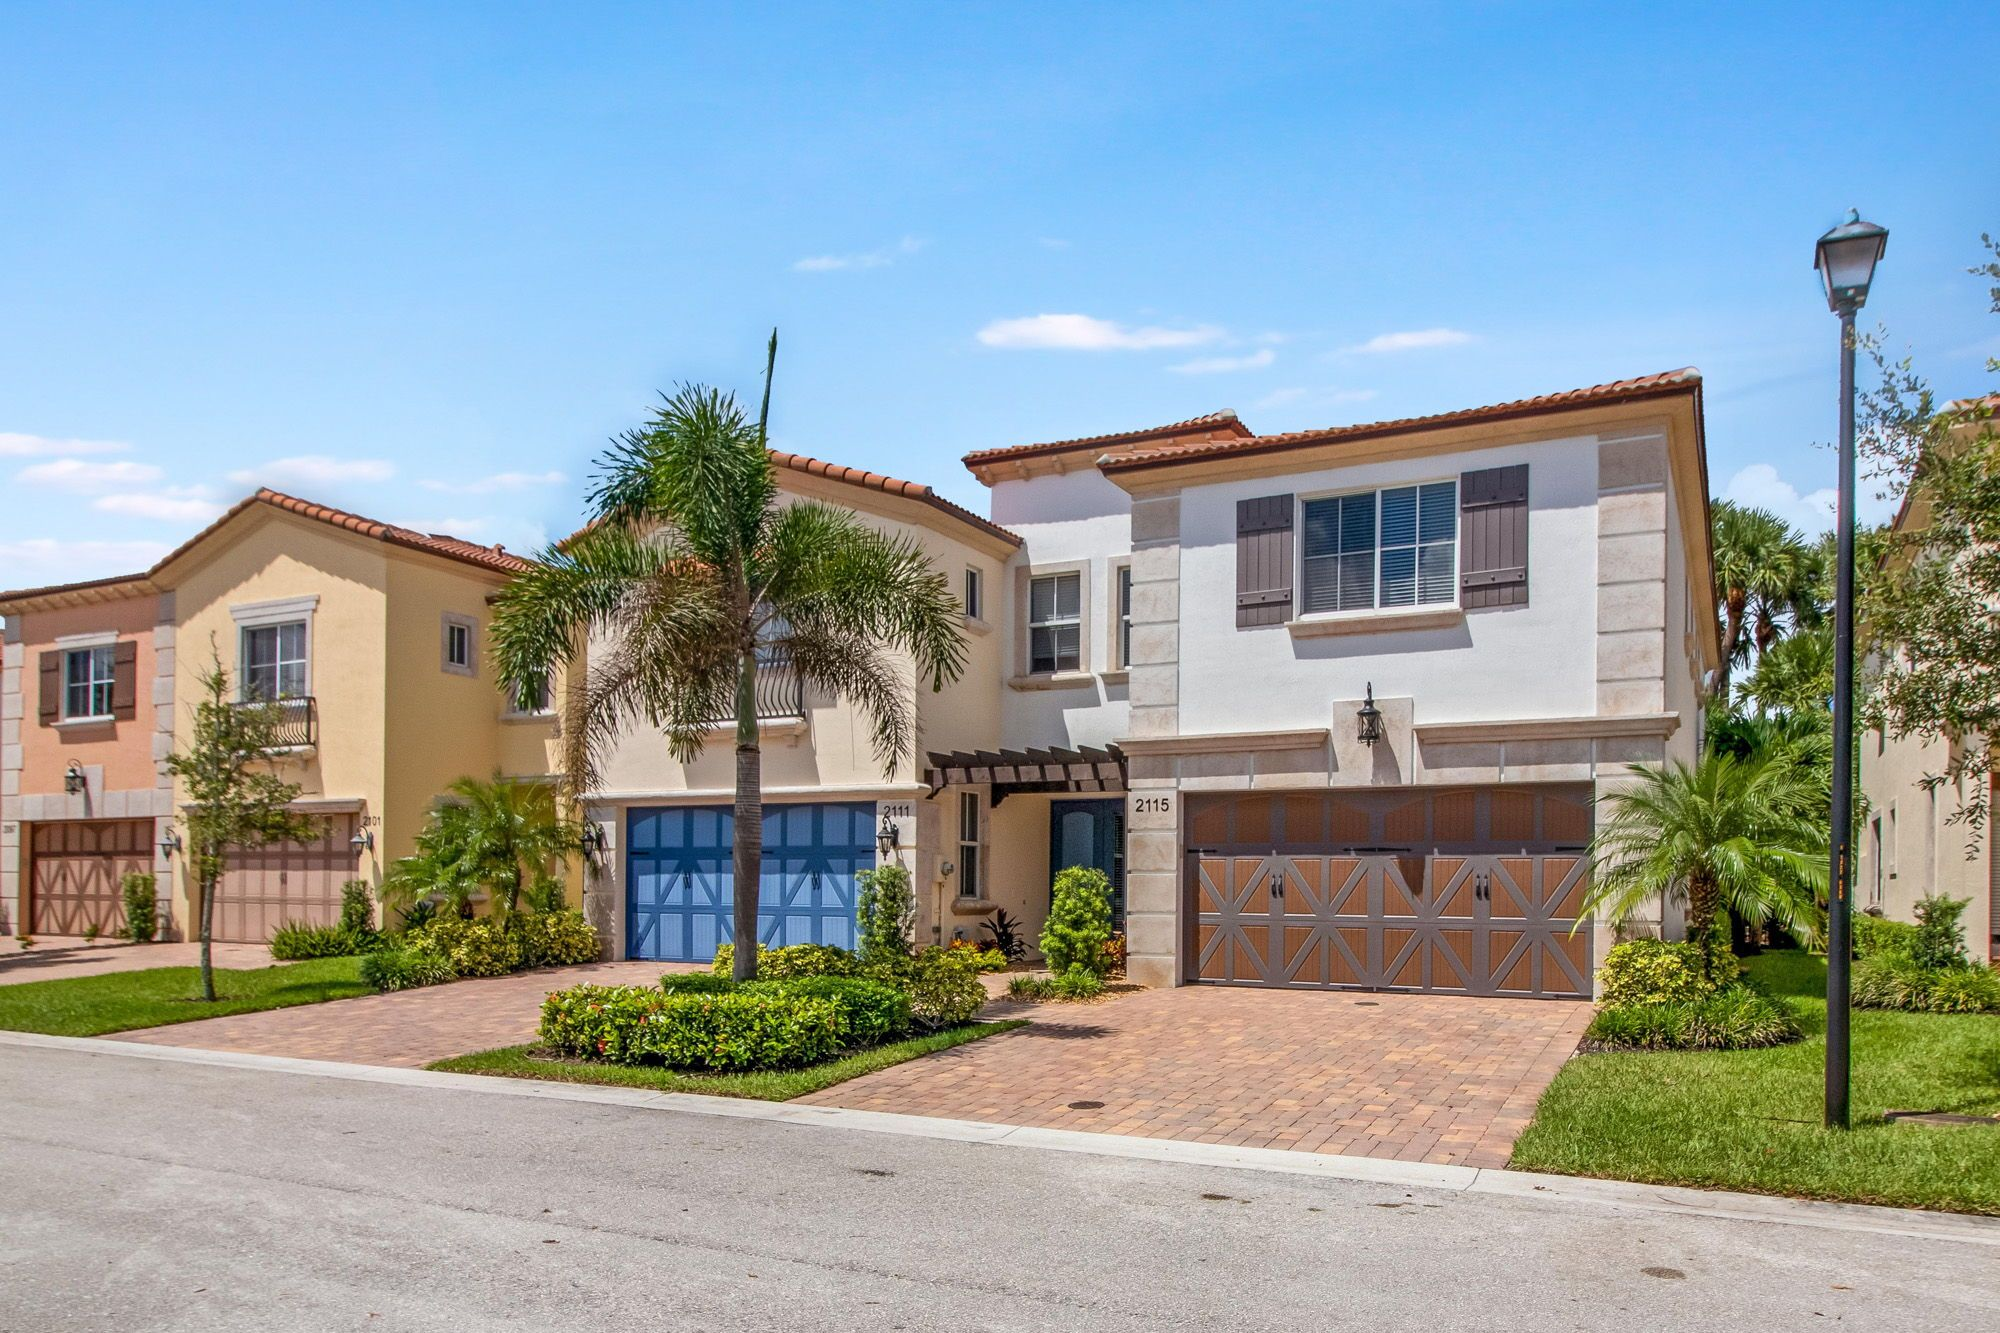 This Newer Construction Mediterranean Style Luxury Townhome Features A Desirable Open Floorplan Plus 3 Gen Townhouse Exterior West Palm Beach Palm Beach Living